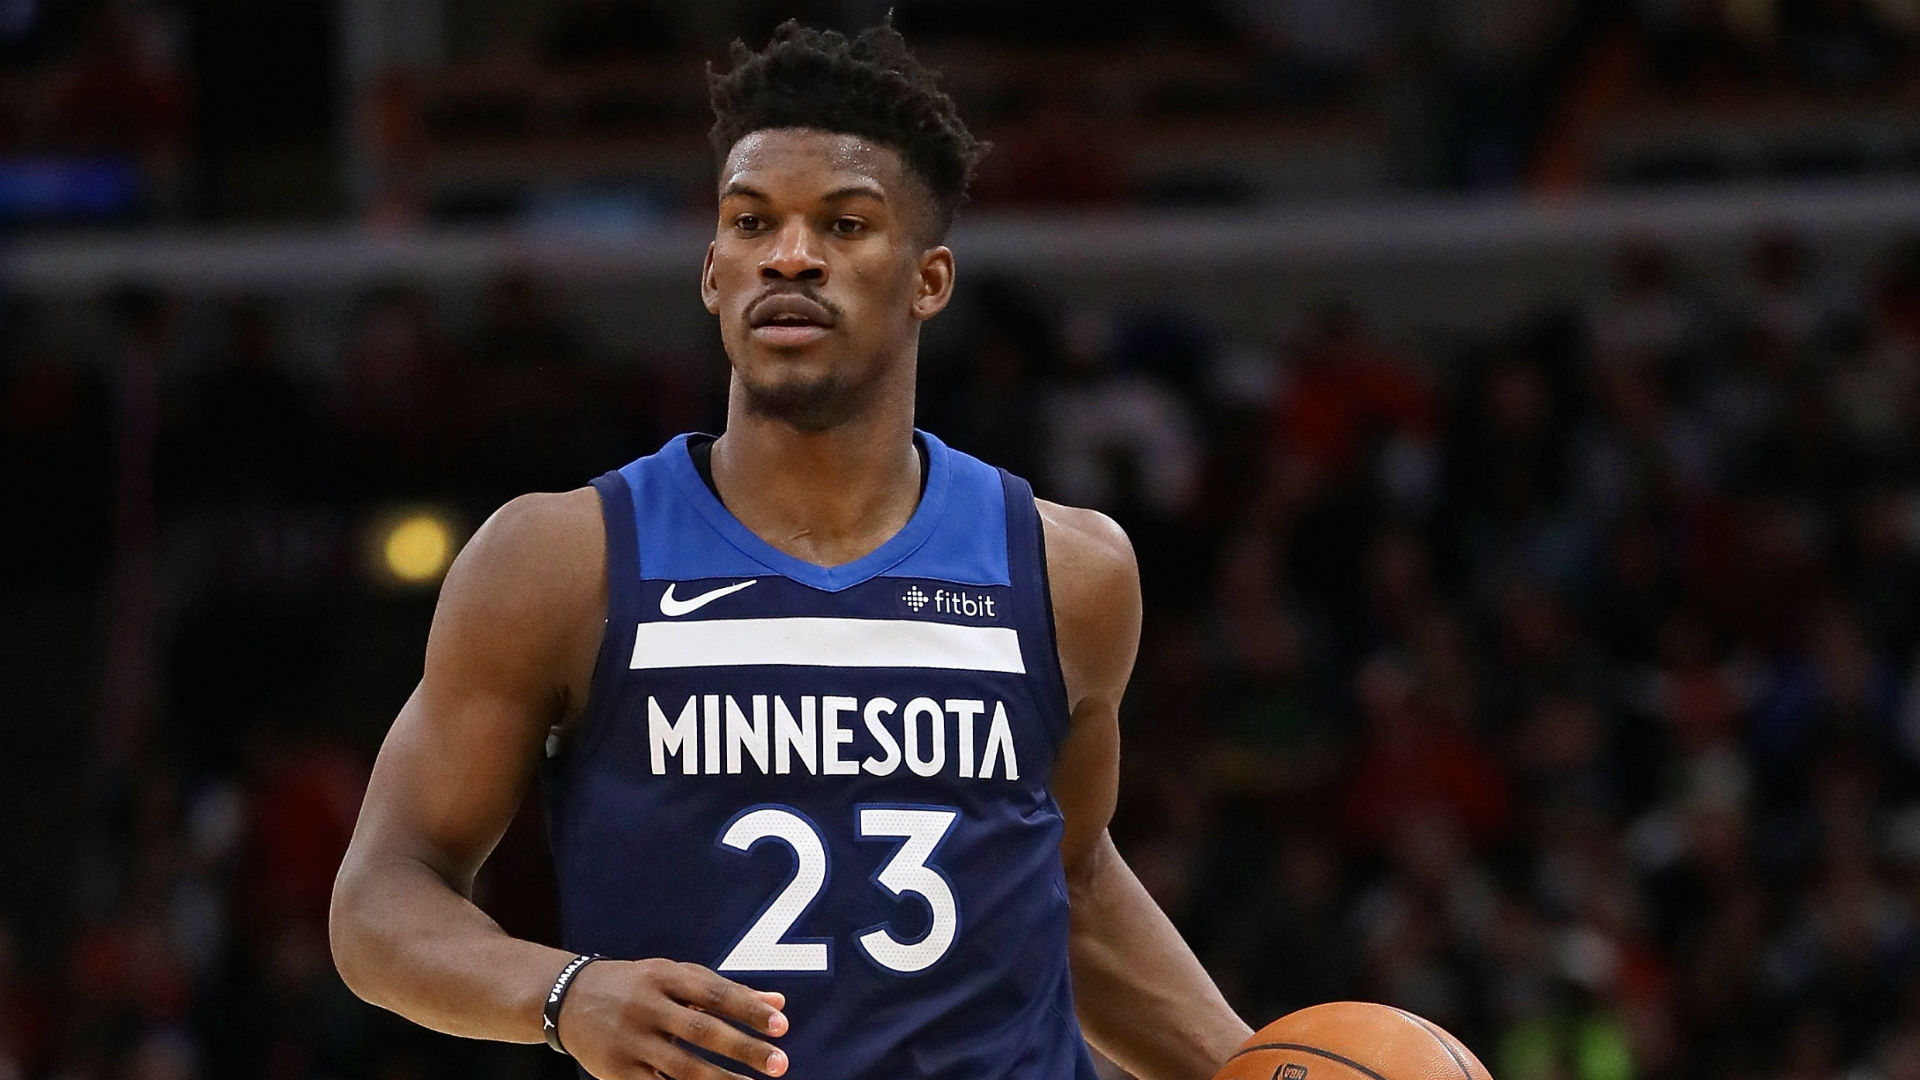 Butler booed by Timberwolves fans during introductions